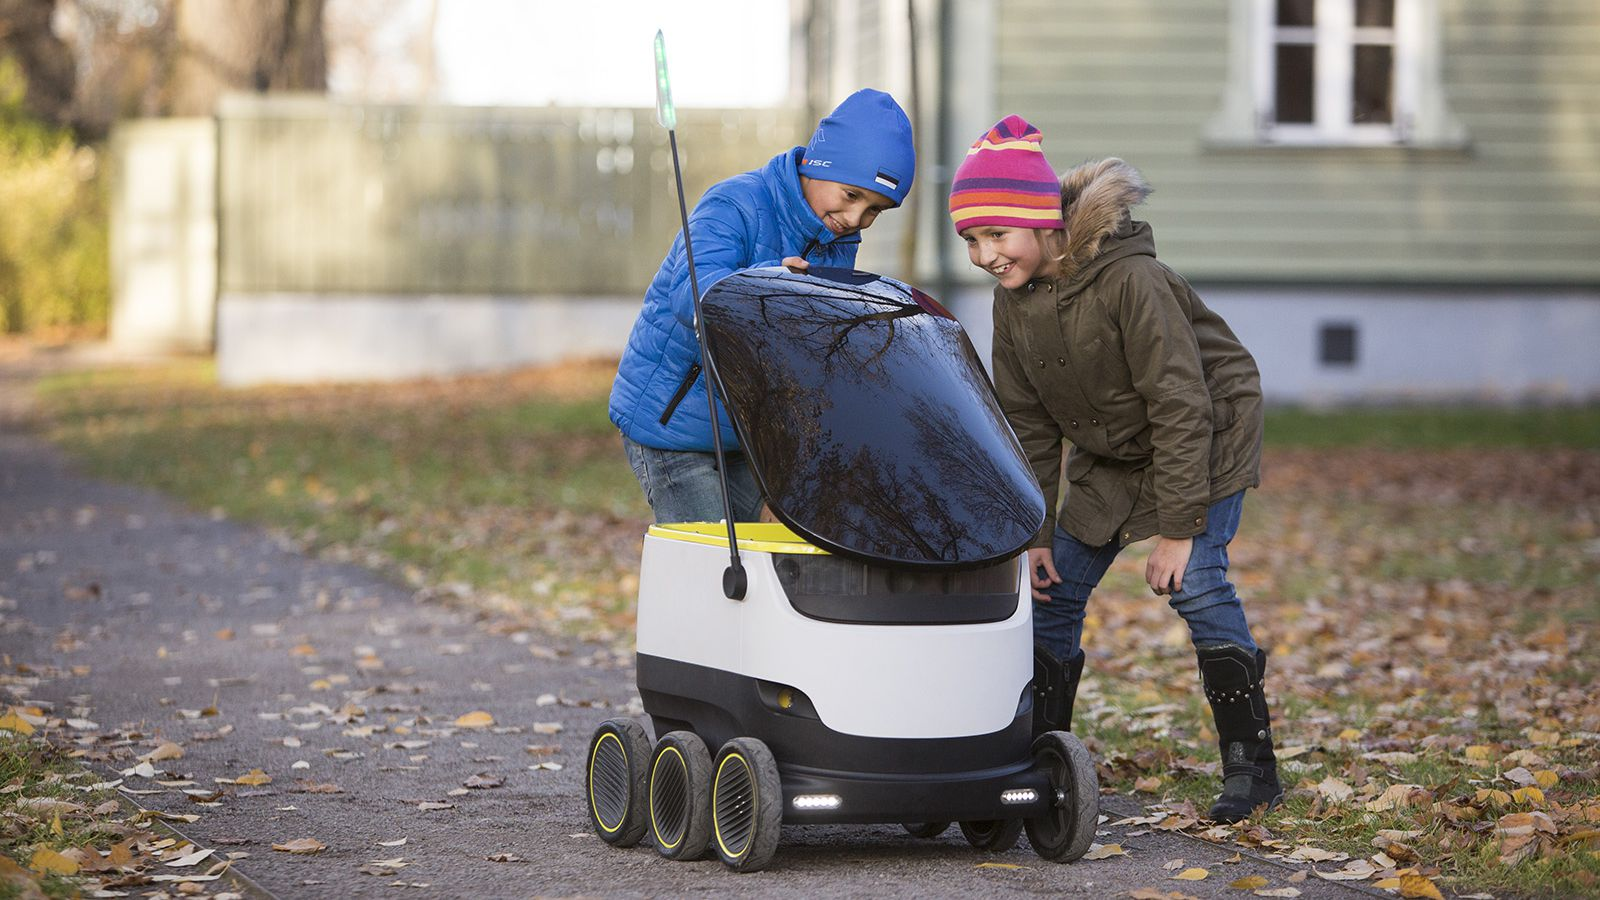 Idaho is the Second State to Allow Unmanned Robots to Deliver to your Front Door